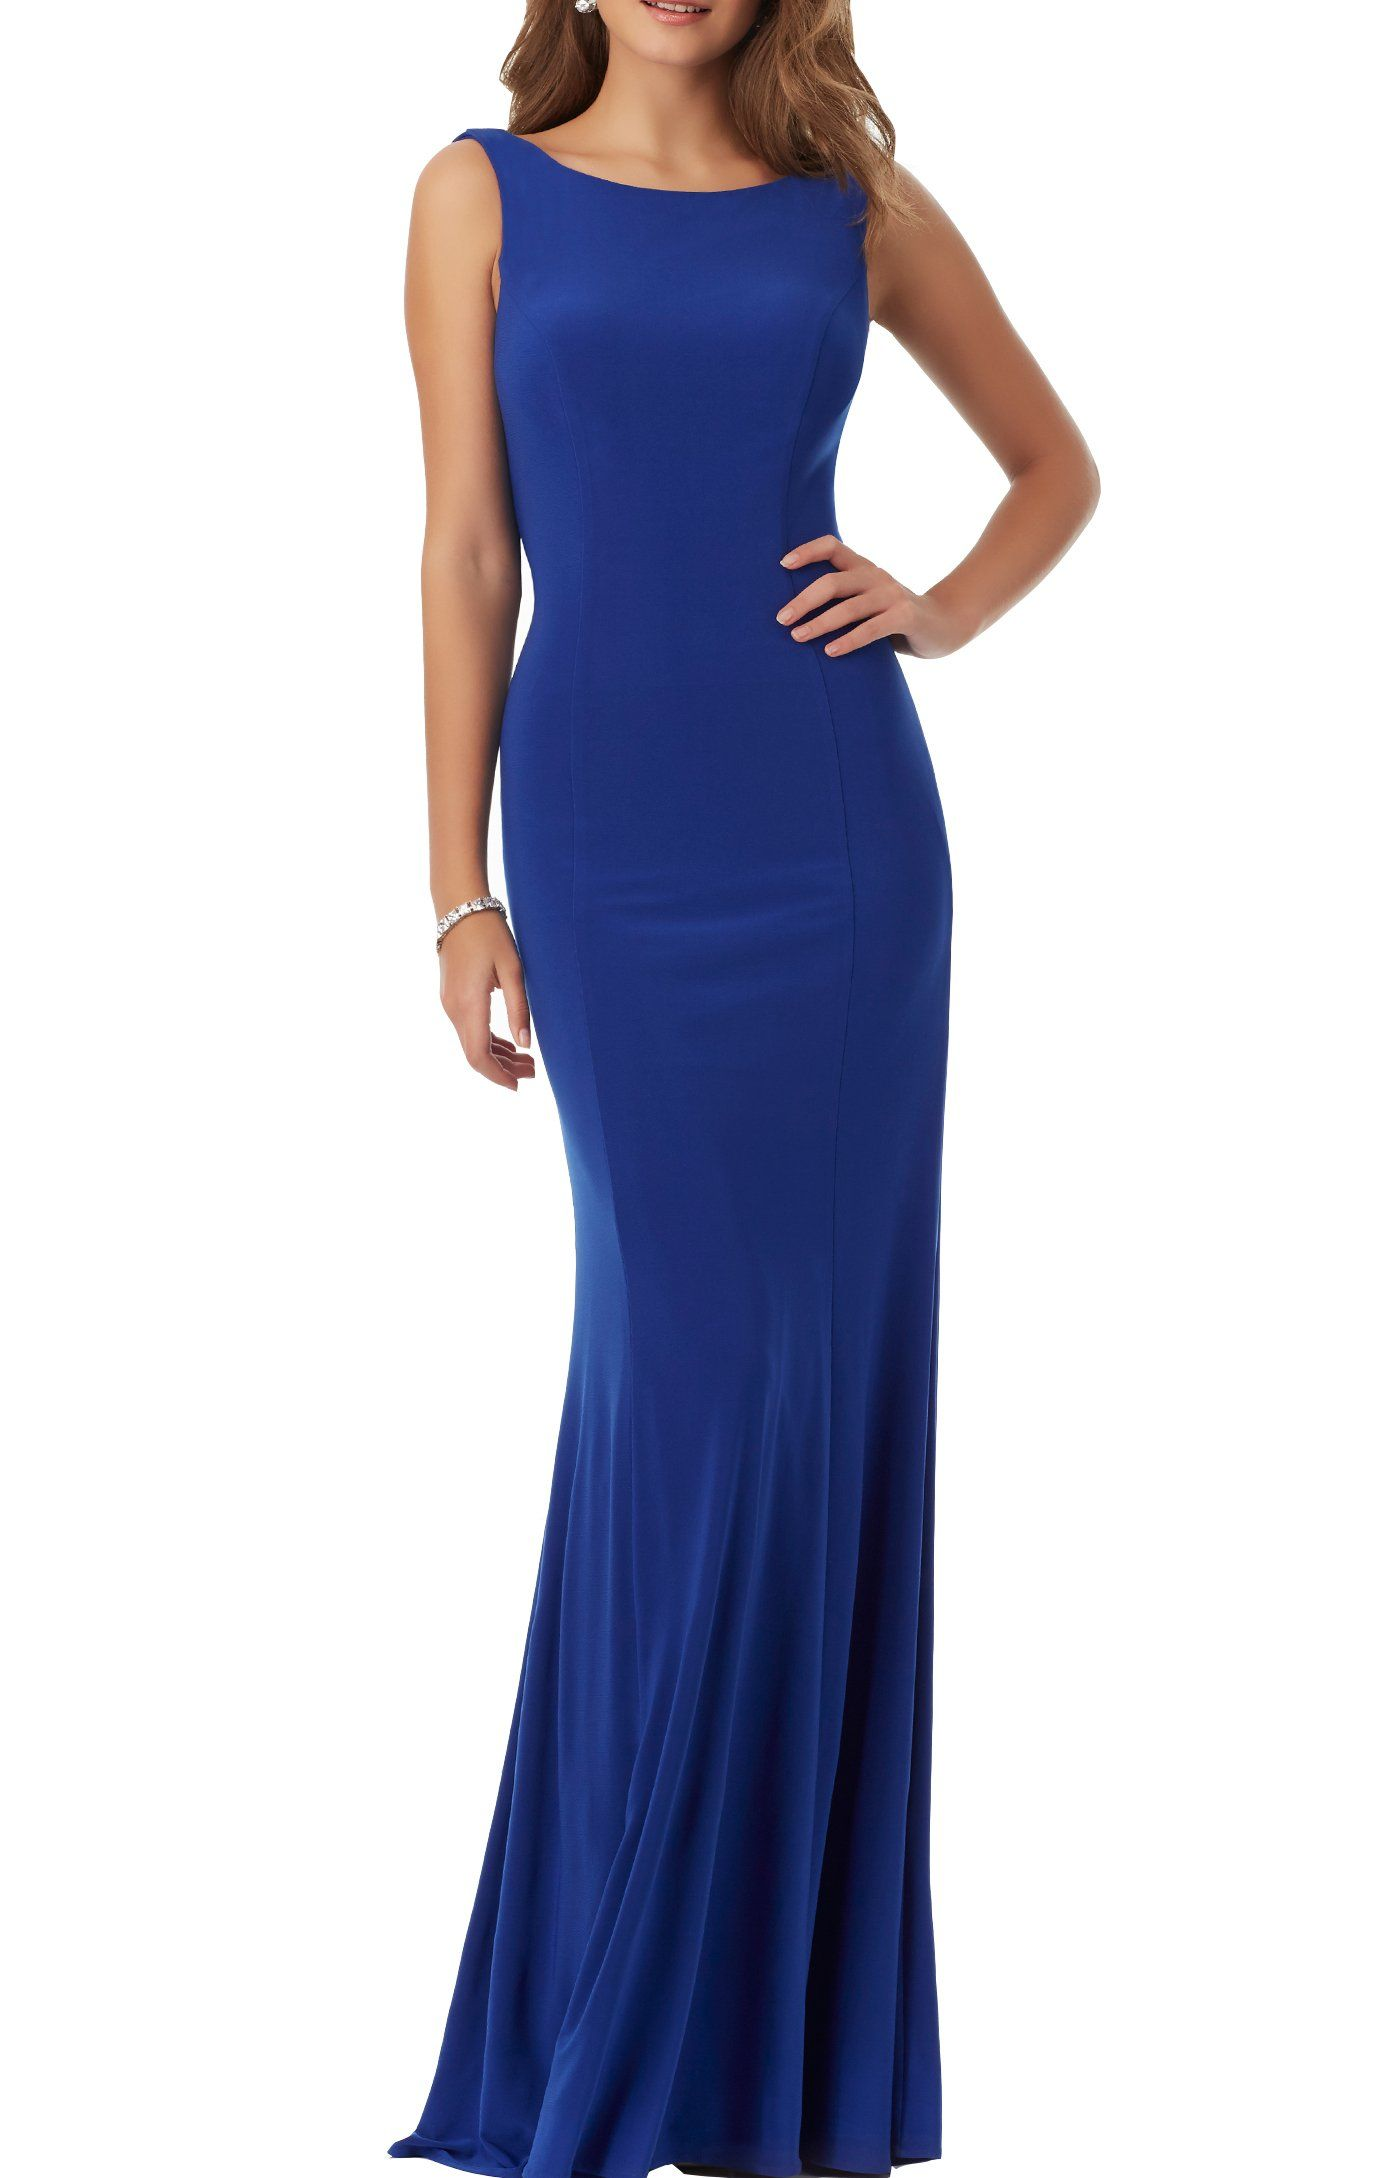 Wemarry juniors spandex prom dress for women formal with beaded